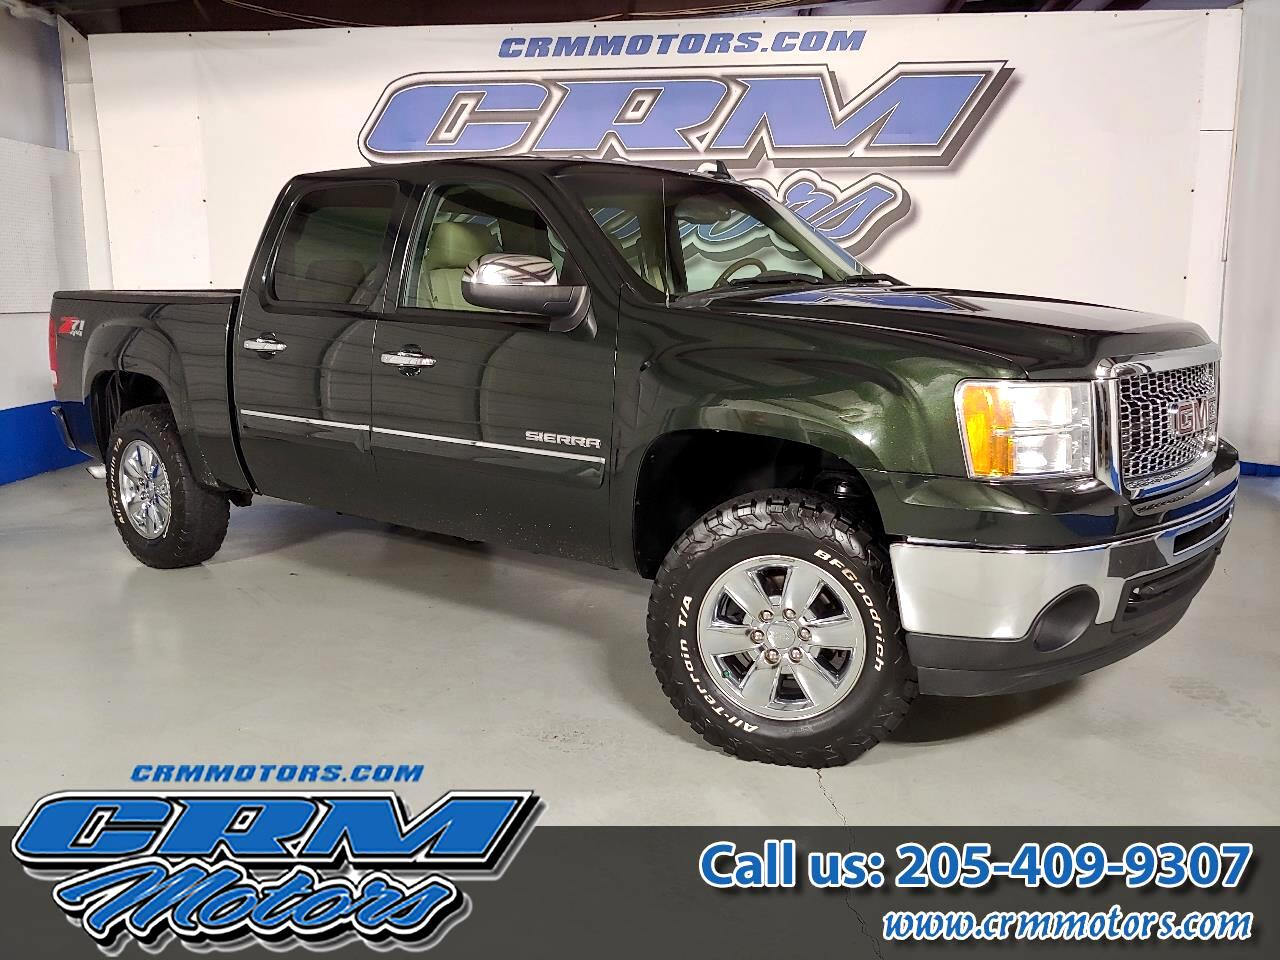 2013 GMC Sierra 1500 4WD, Z71, CREW CAB, SLT WITH LEATHER & MORE!